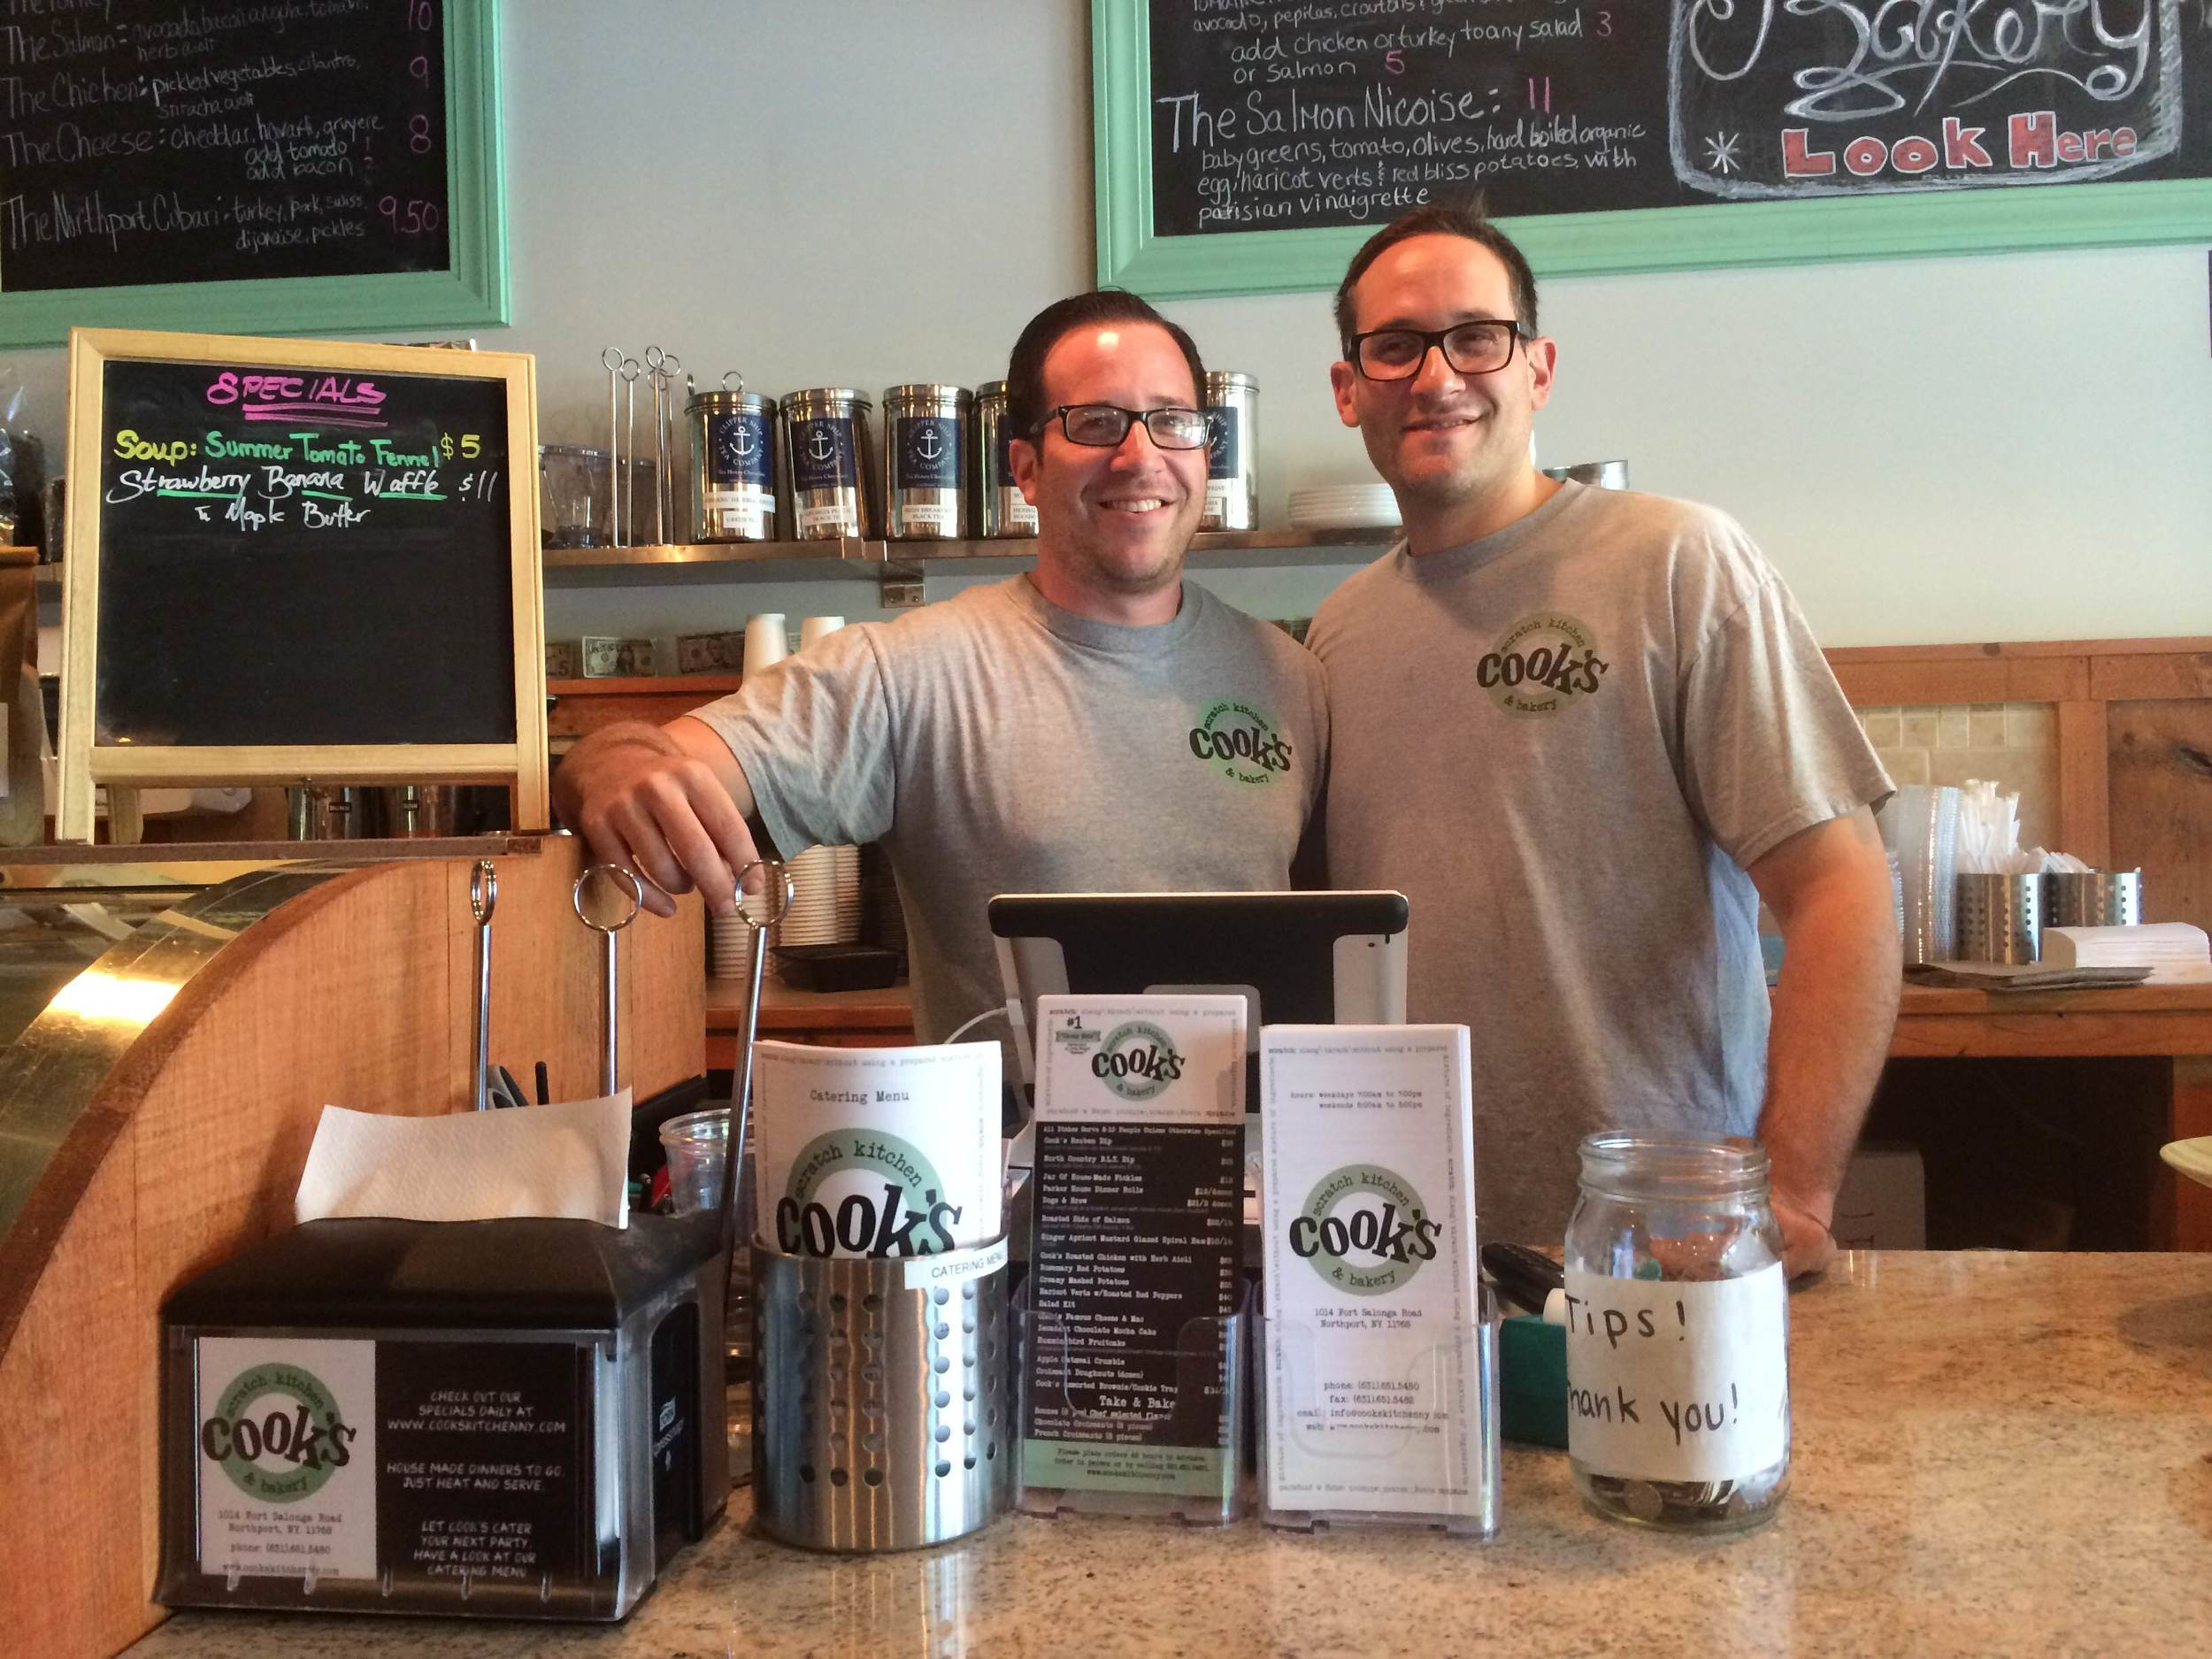 Brothers Josh and David Cook are bringing their business to Huntington's Book Revue next month.